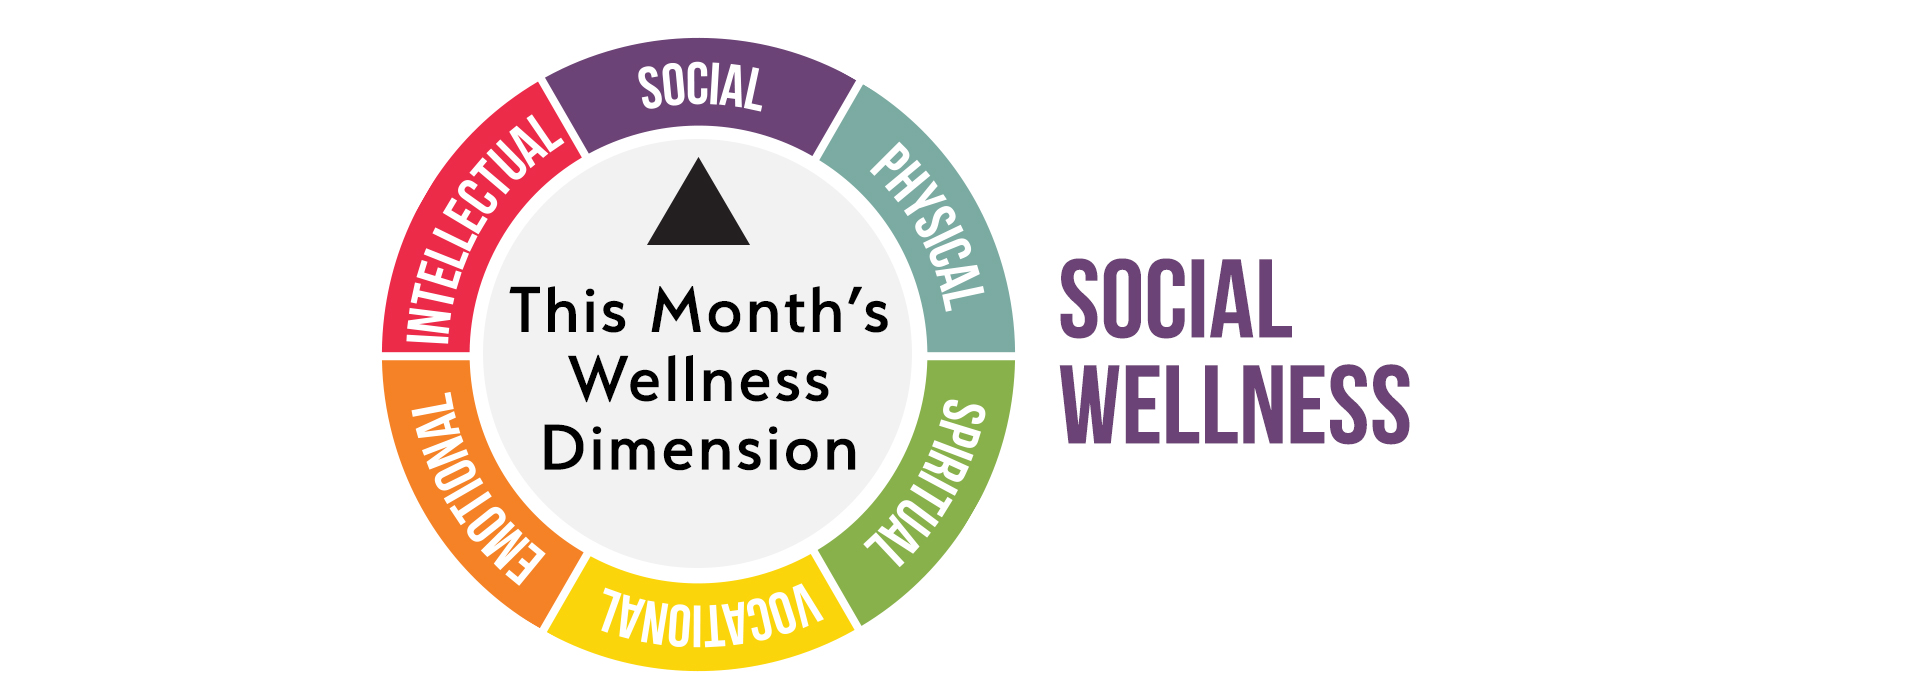 Keeping Up With The Wellness Dimensions: Social Wellness